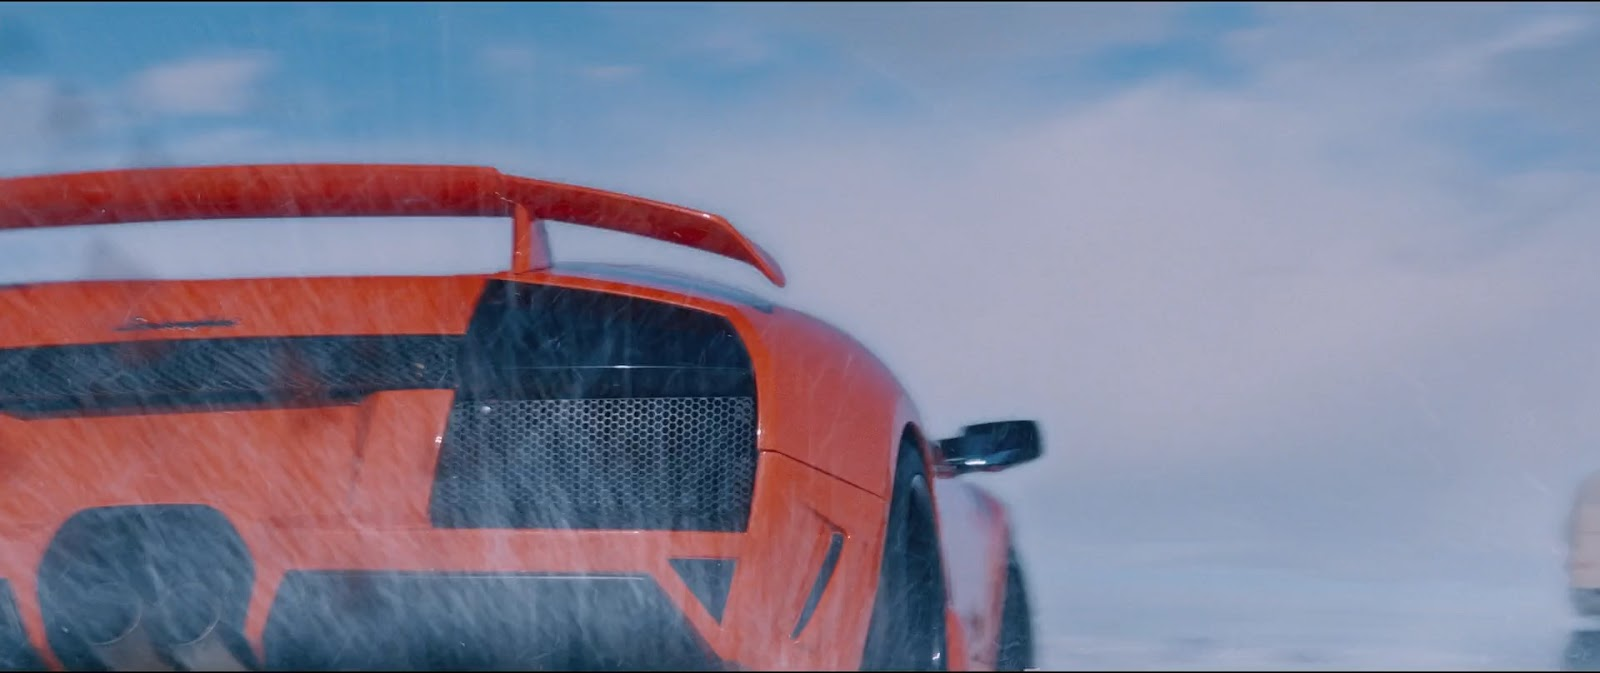 The Fate of the Furious (2017) 4